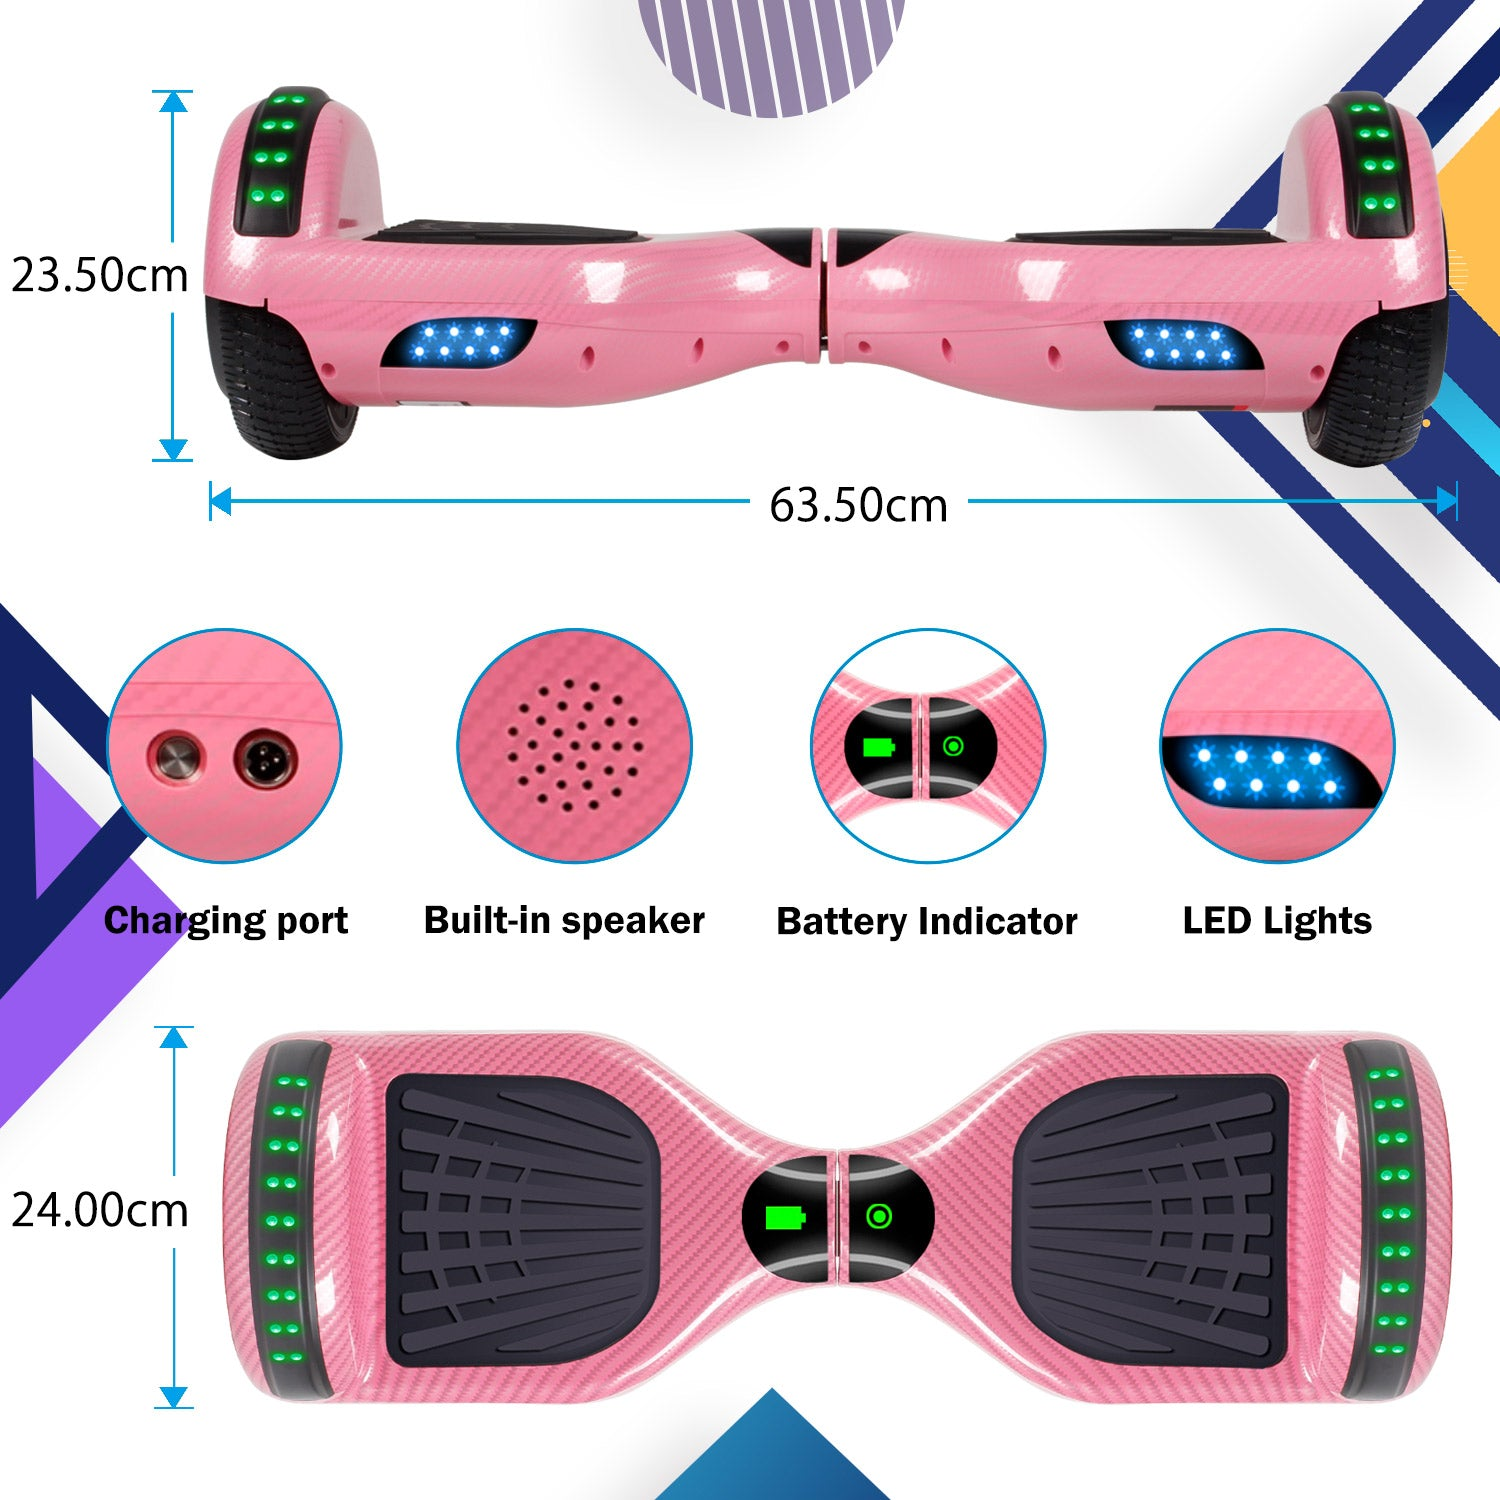 YHR 6.5 Inch Hoverboard with Bluetooth W/Speaker, LED Wheels and LED Lights for Kids and Adult - Carbon fiber